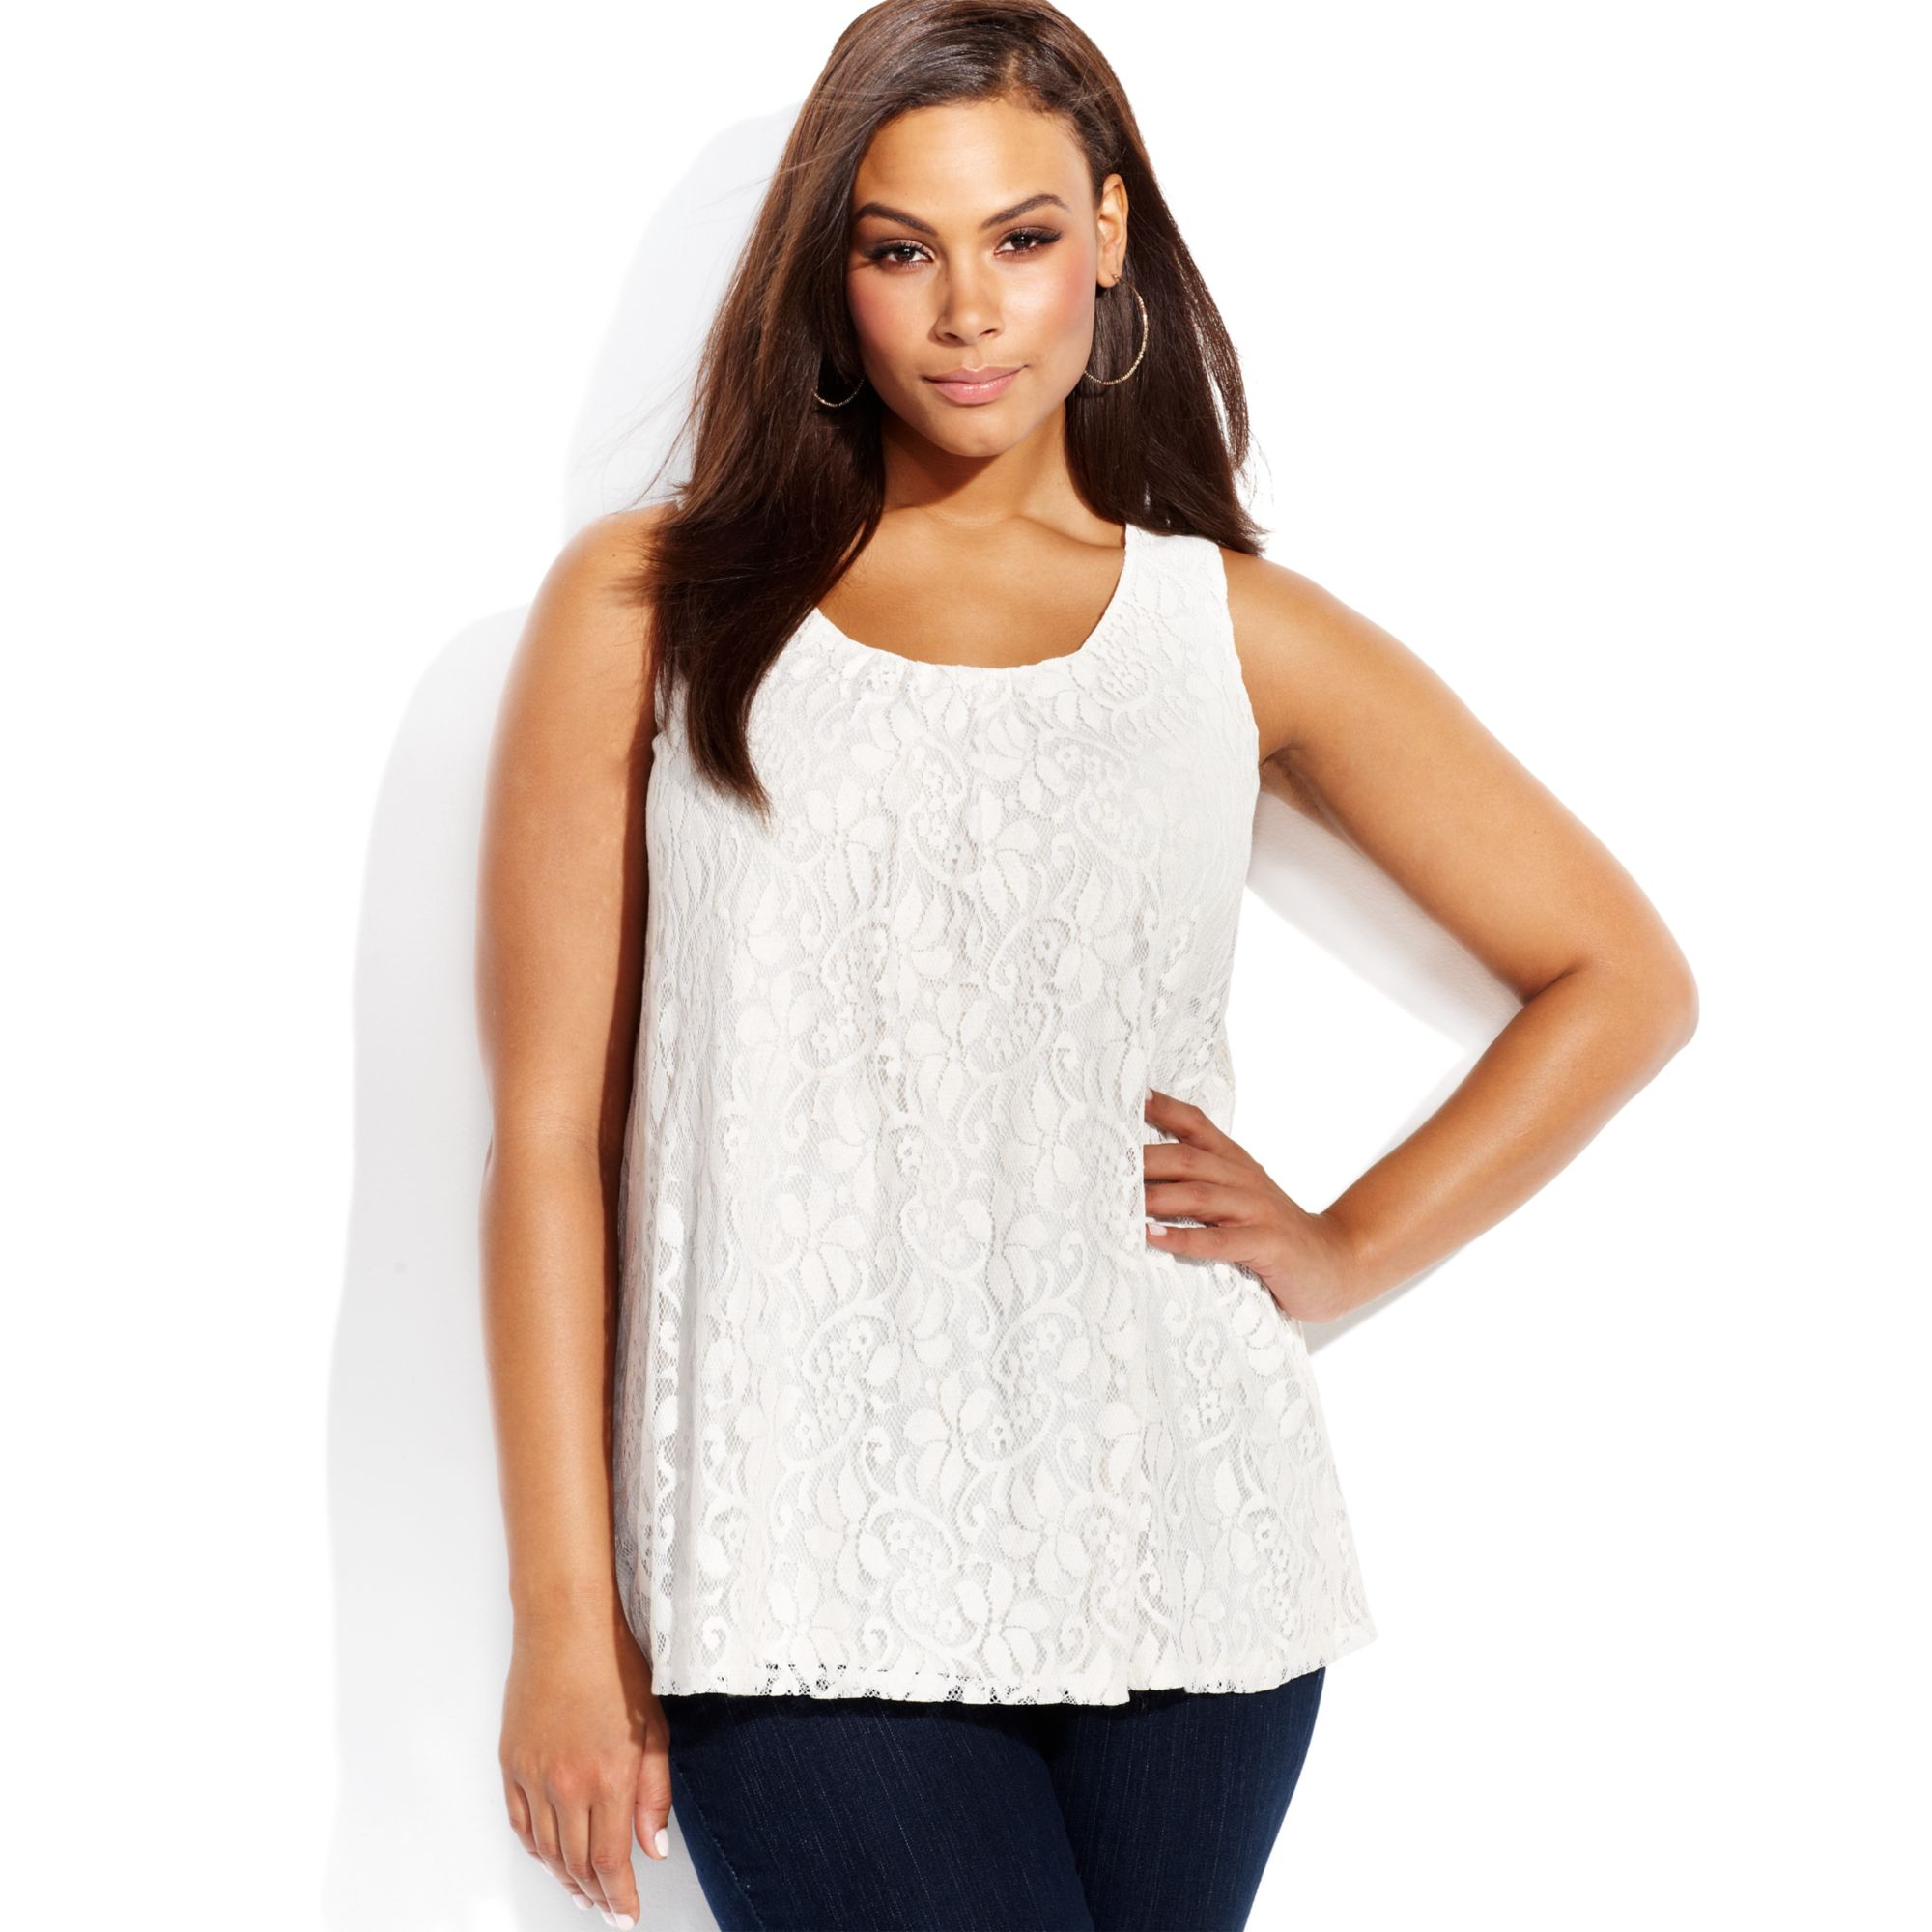 a5bab77c258 INC International Concepts Plus Size Sleeveless Lace Tank Top in ...